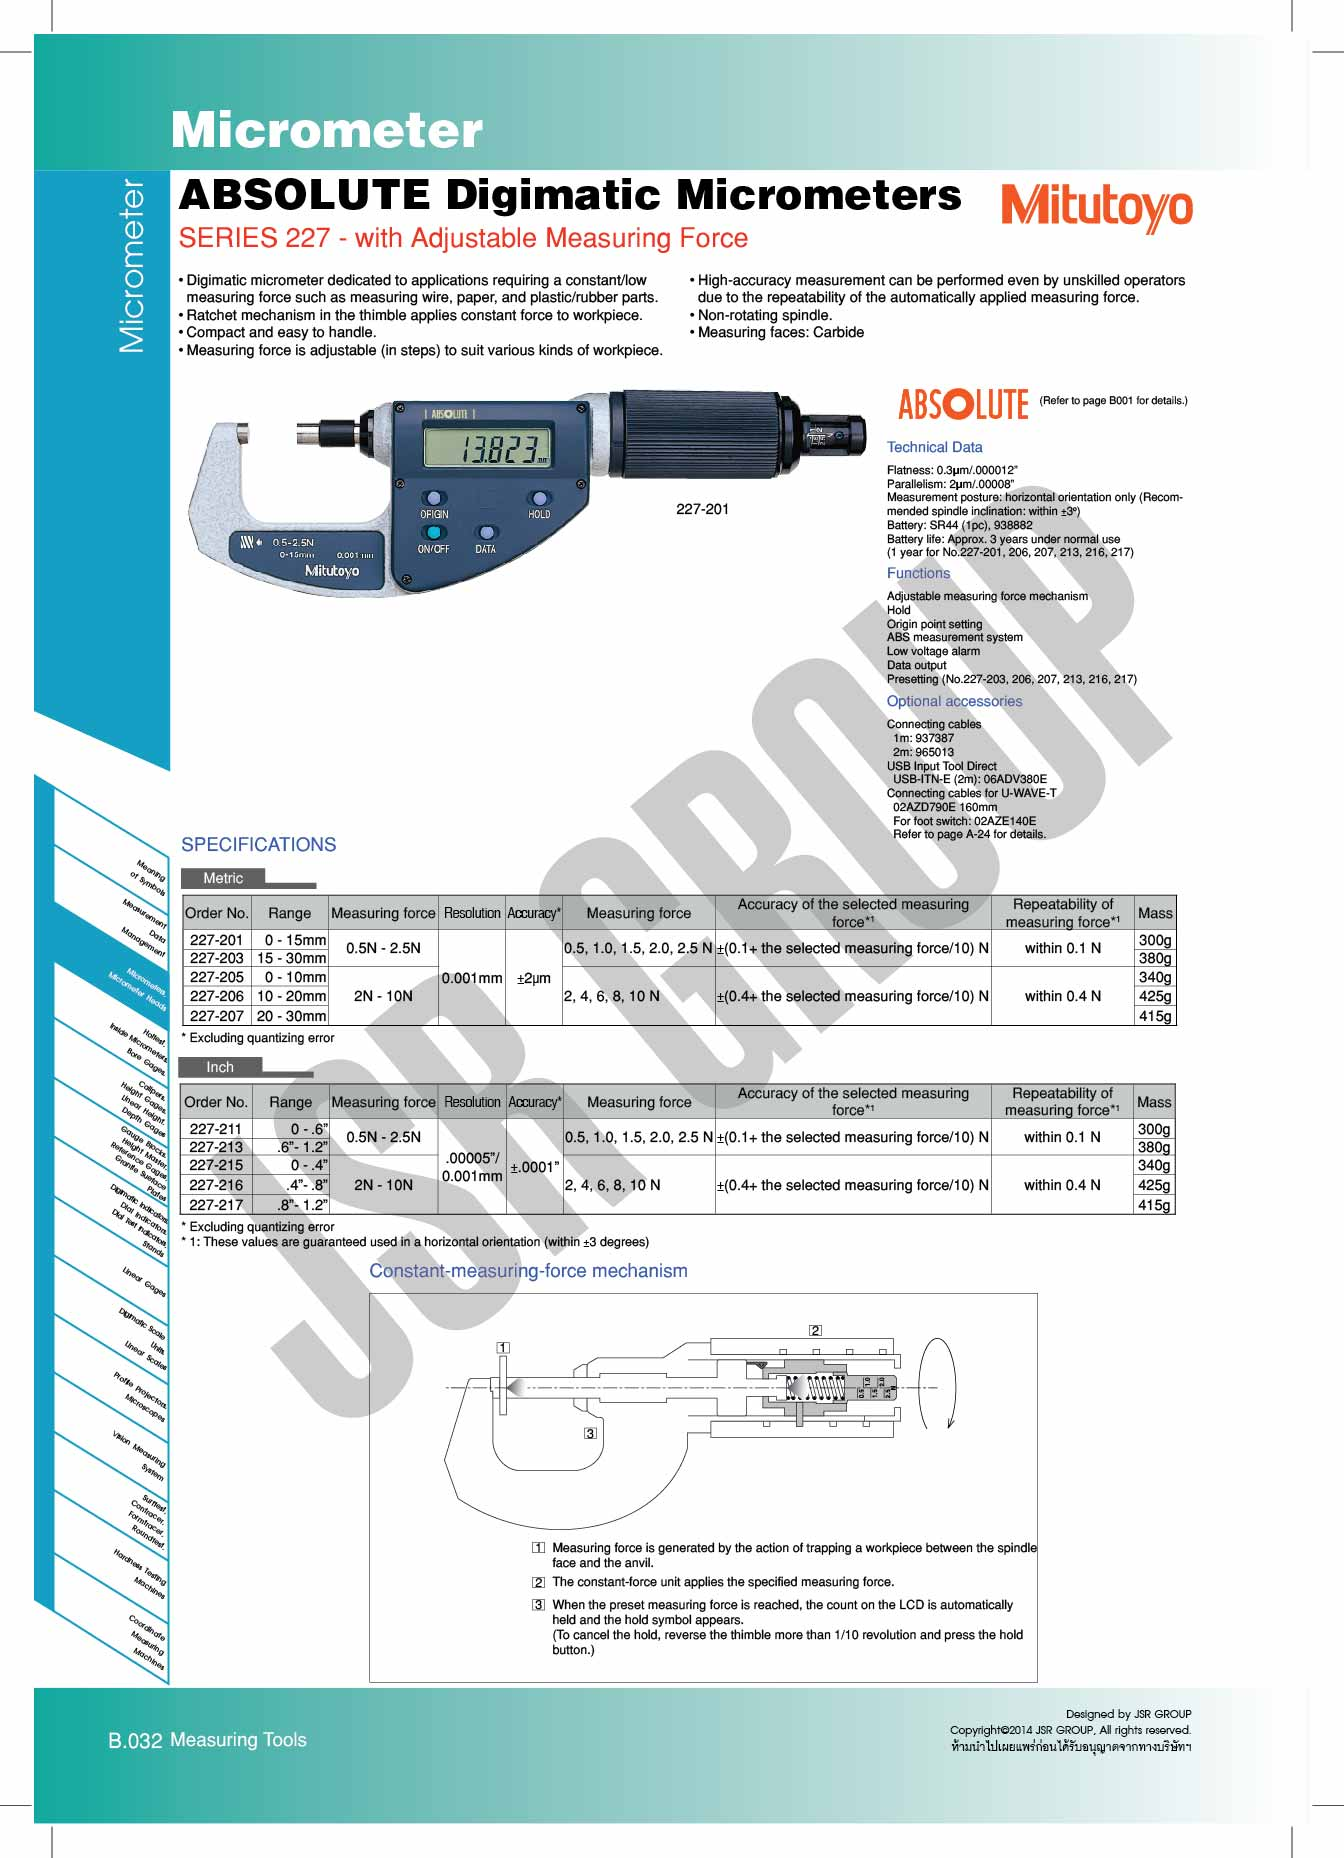 ABSOLUTE Digimatic Micrometers SERIES 227 Mitutoyo 1 table